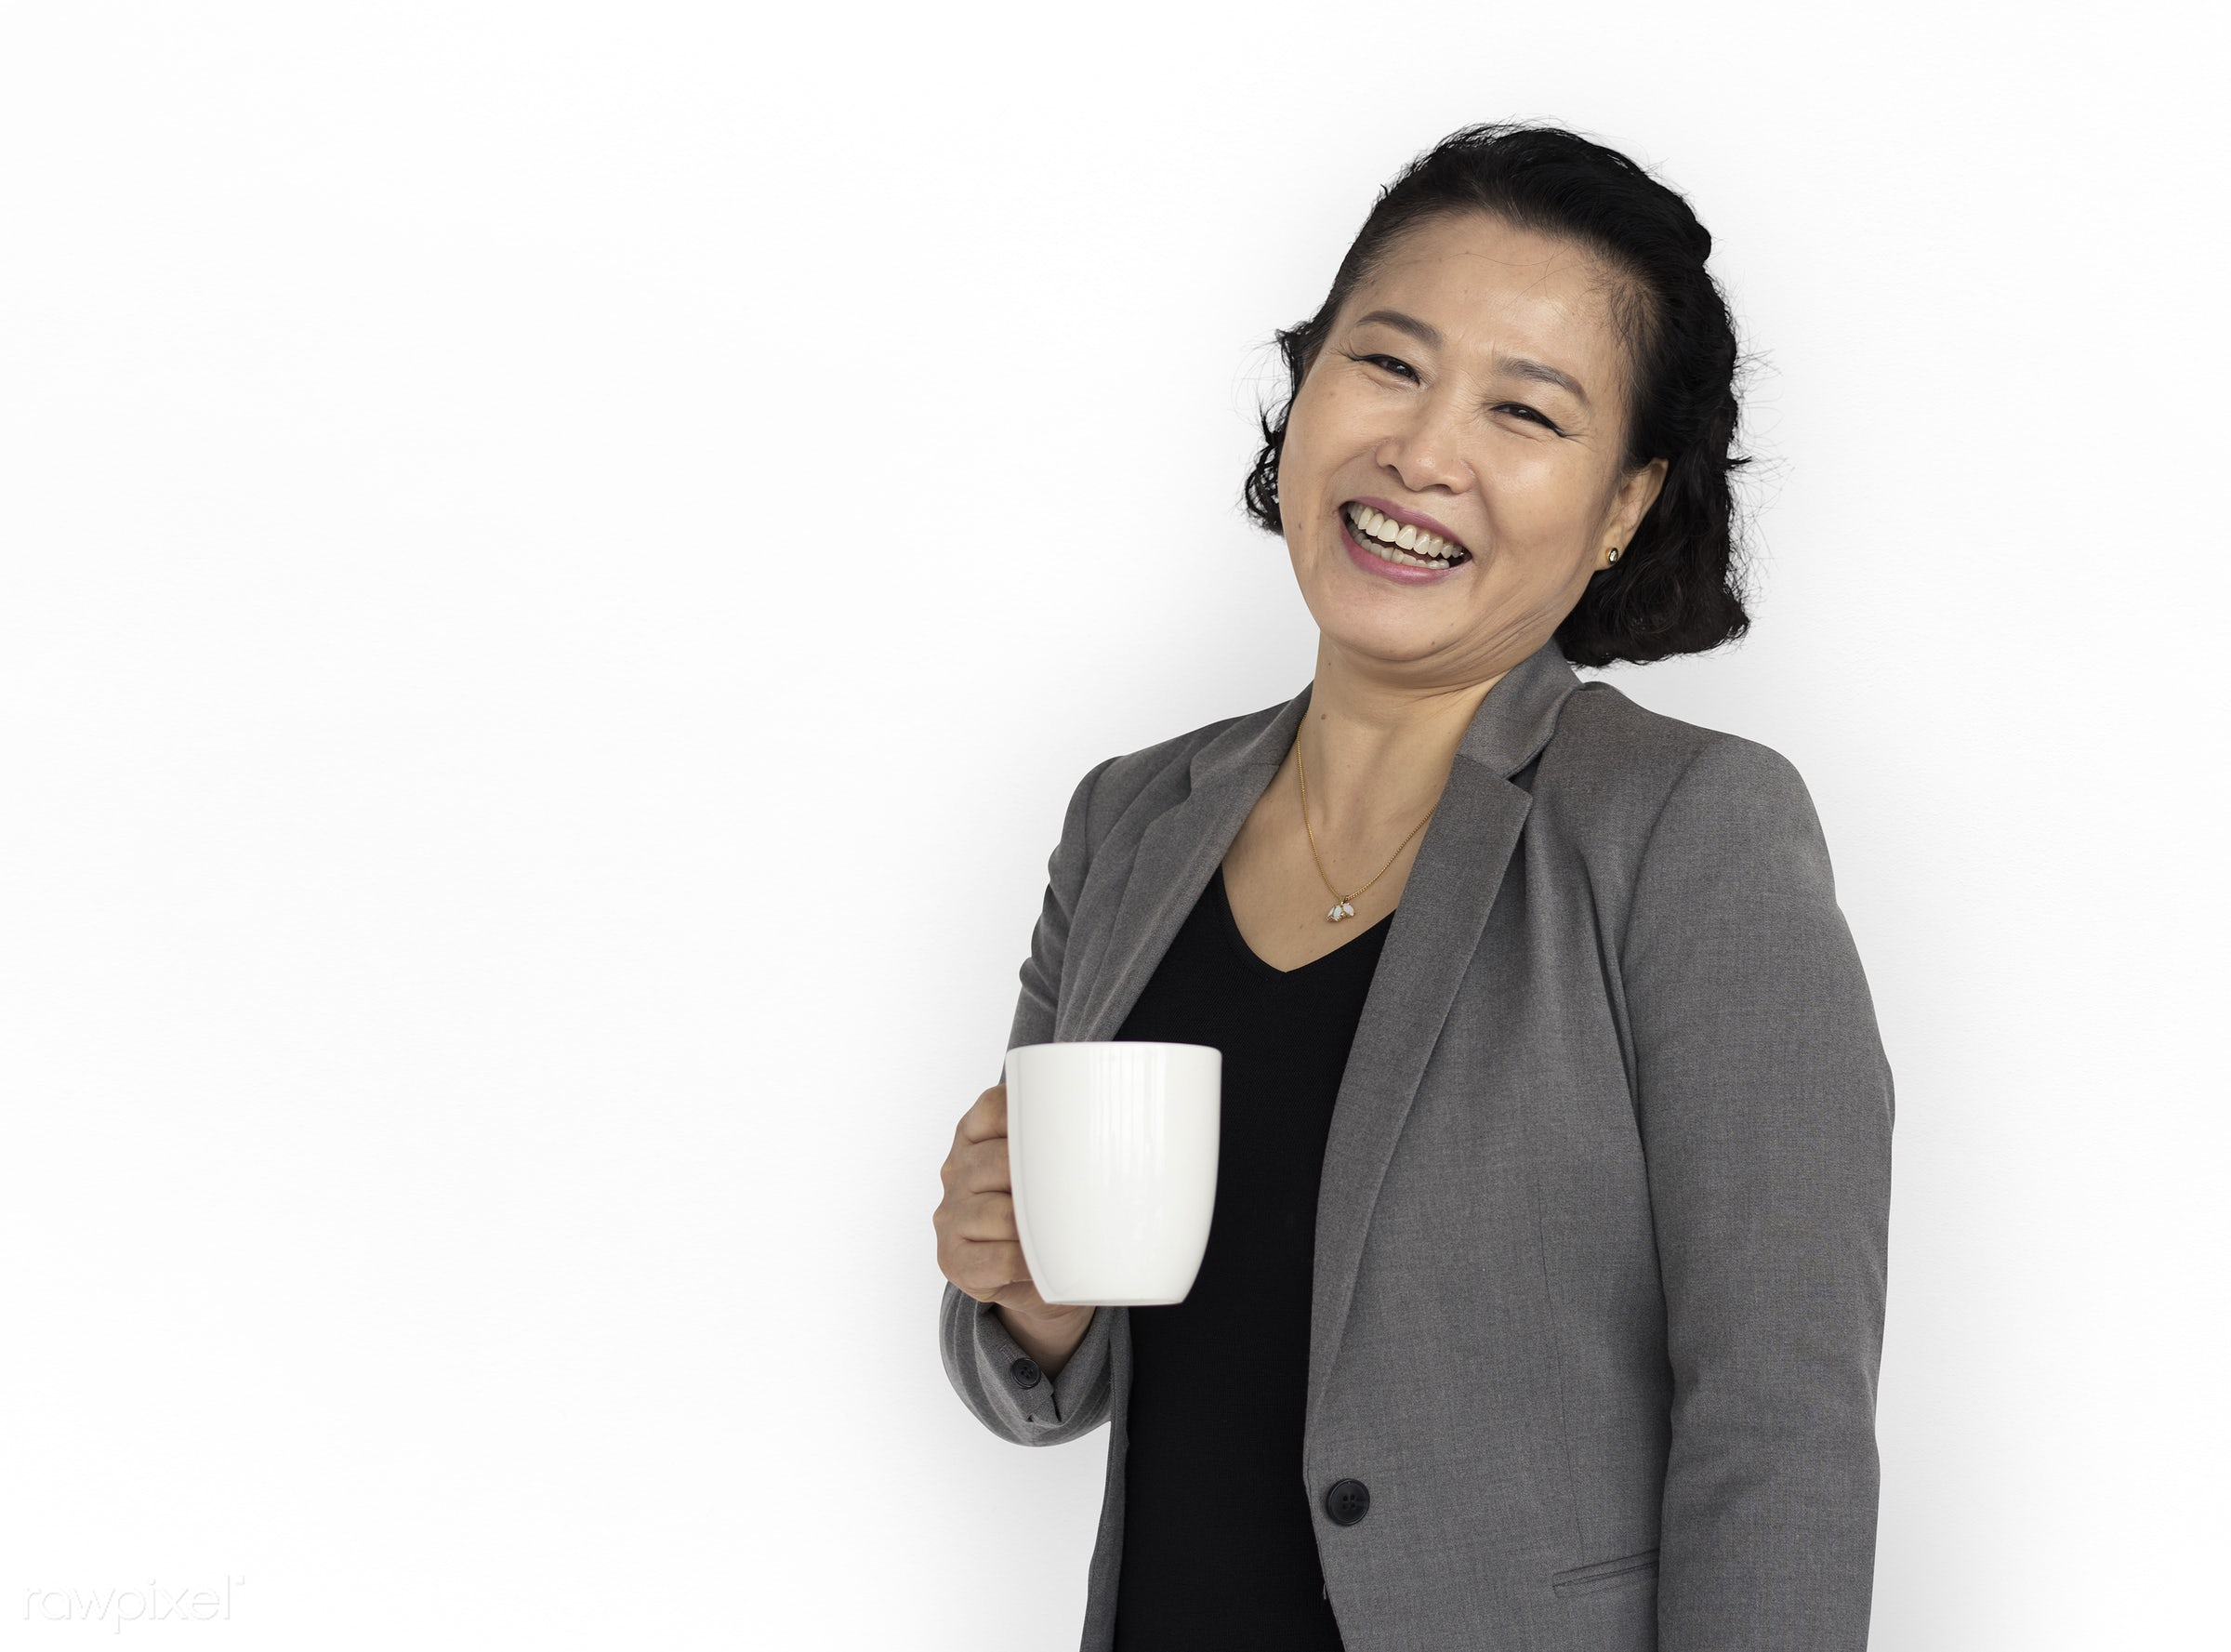 studio, expression, person, old, business wear, isolated on white, people, business, asian, girl, woman, happy, smile,...